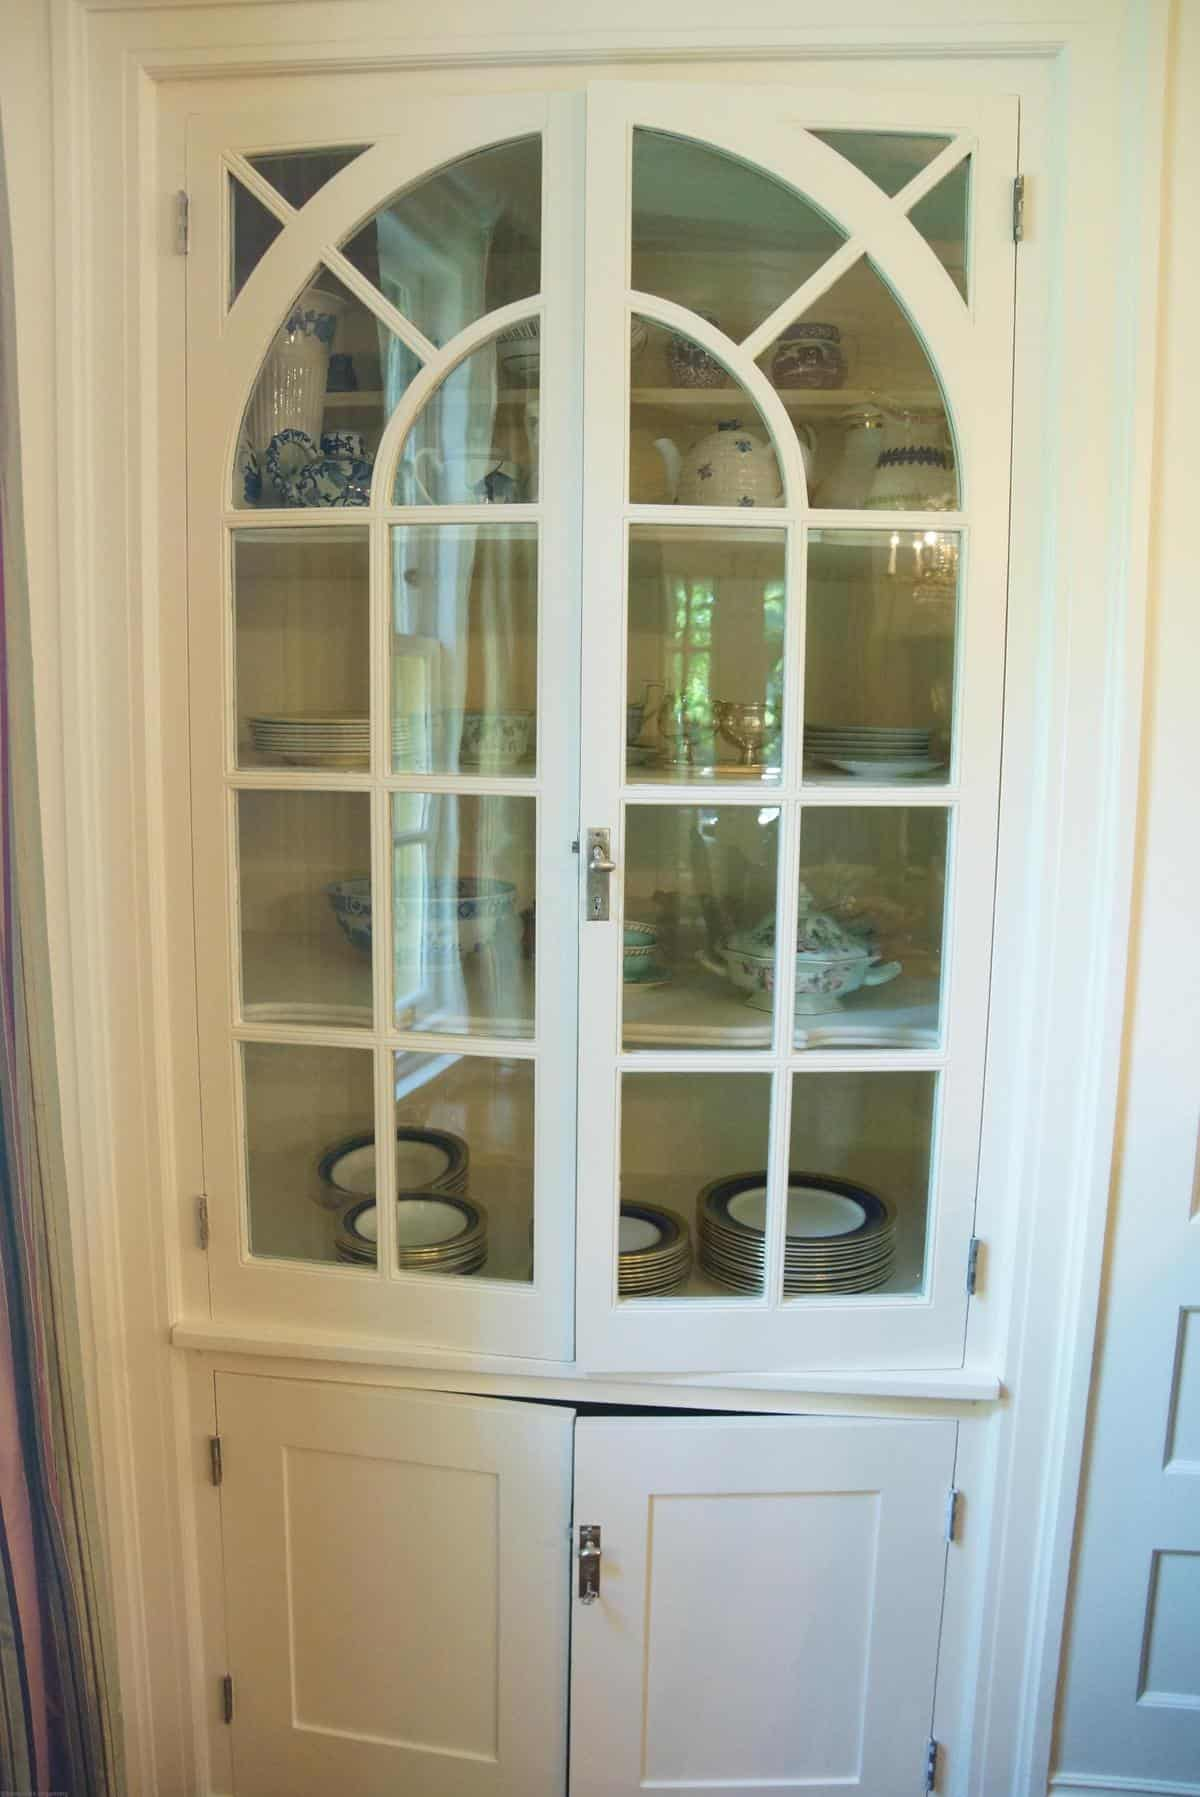 cabinets housewife the home paint makeover cheap management cabinet cherry annie with chalk happy before china diy hutch sloan